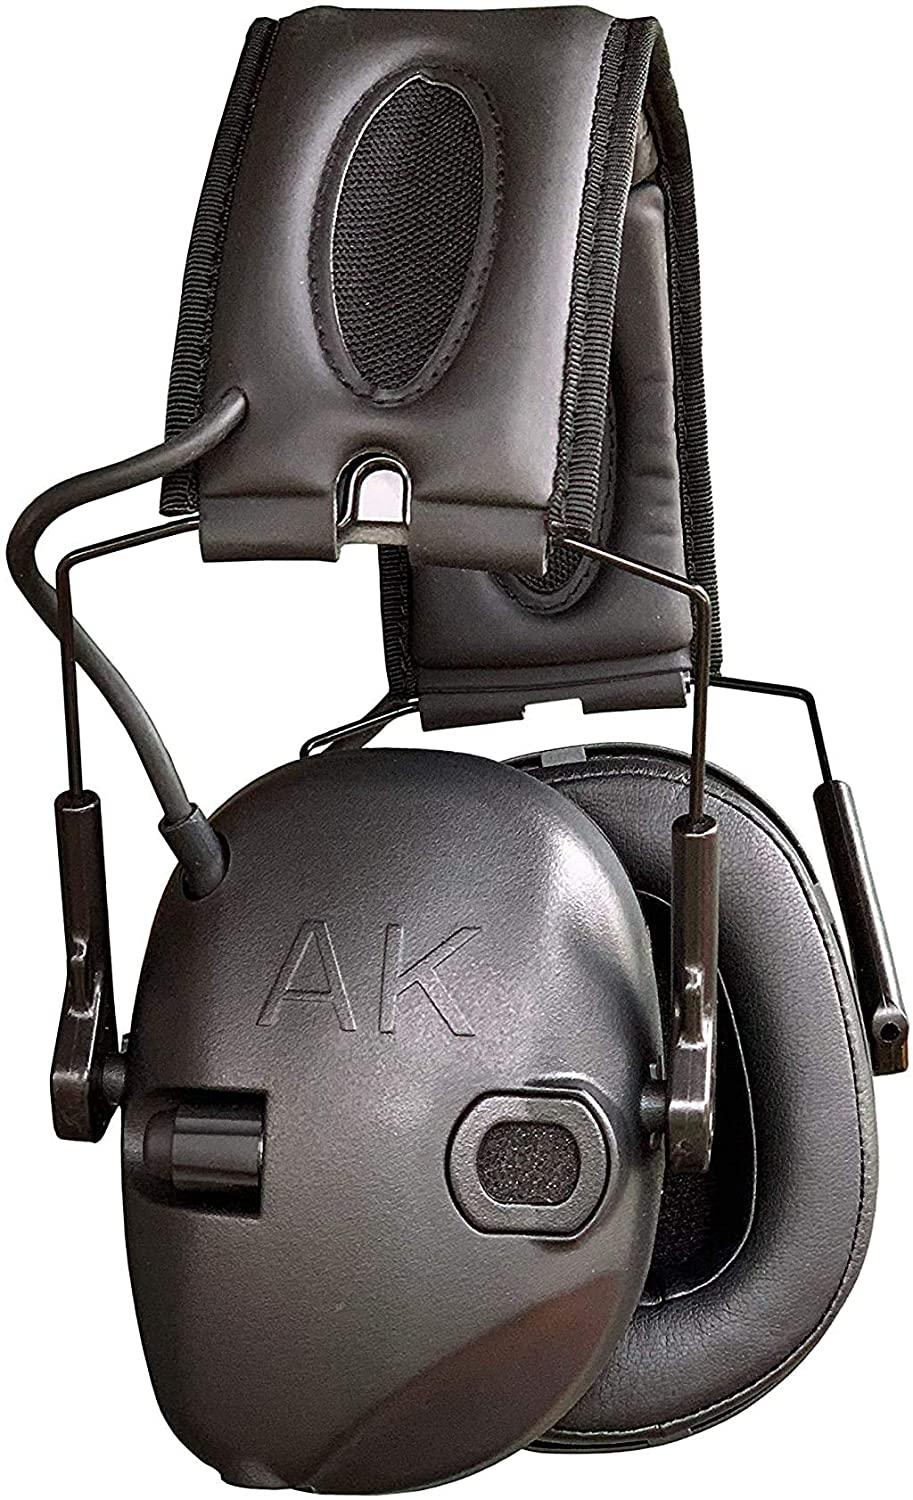 AKT1 Sport Sound Amplification 35% OFF Hearing Earmuff Electronic Cheap SALE Start Prote